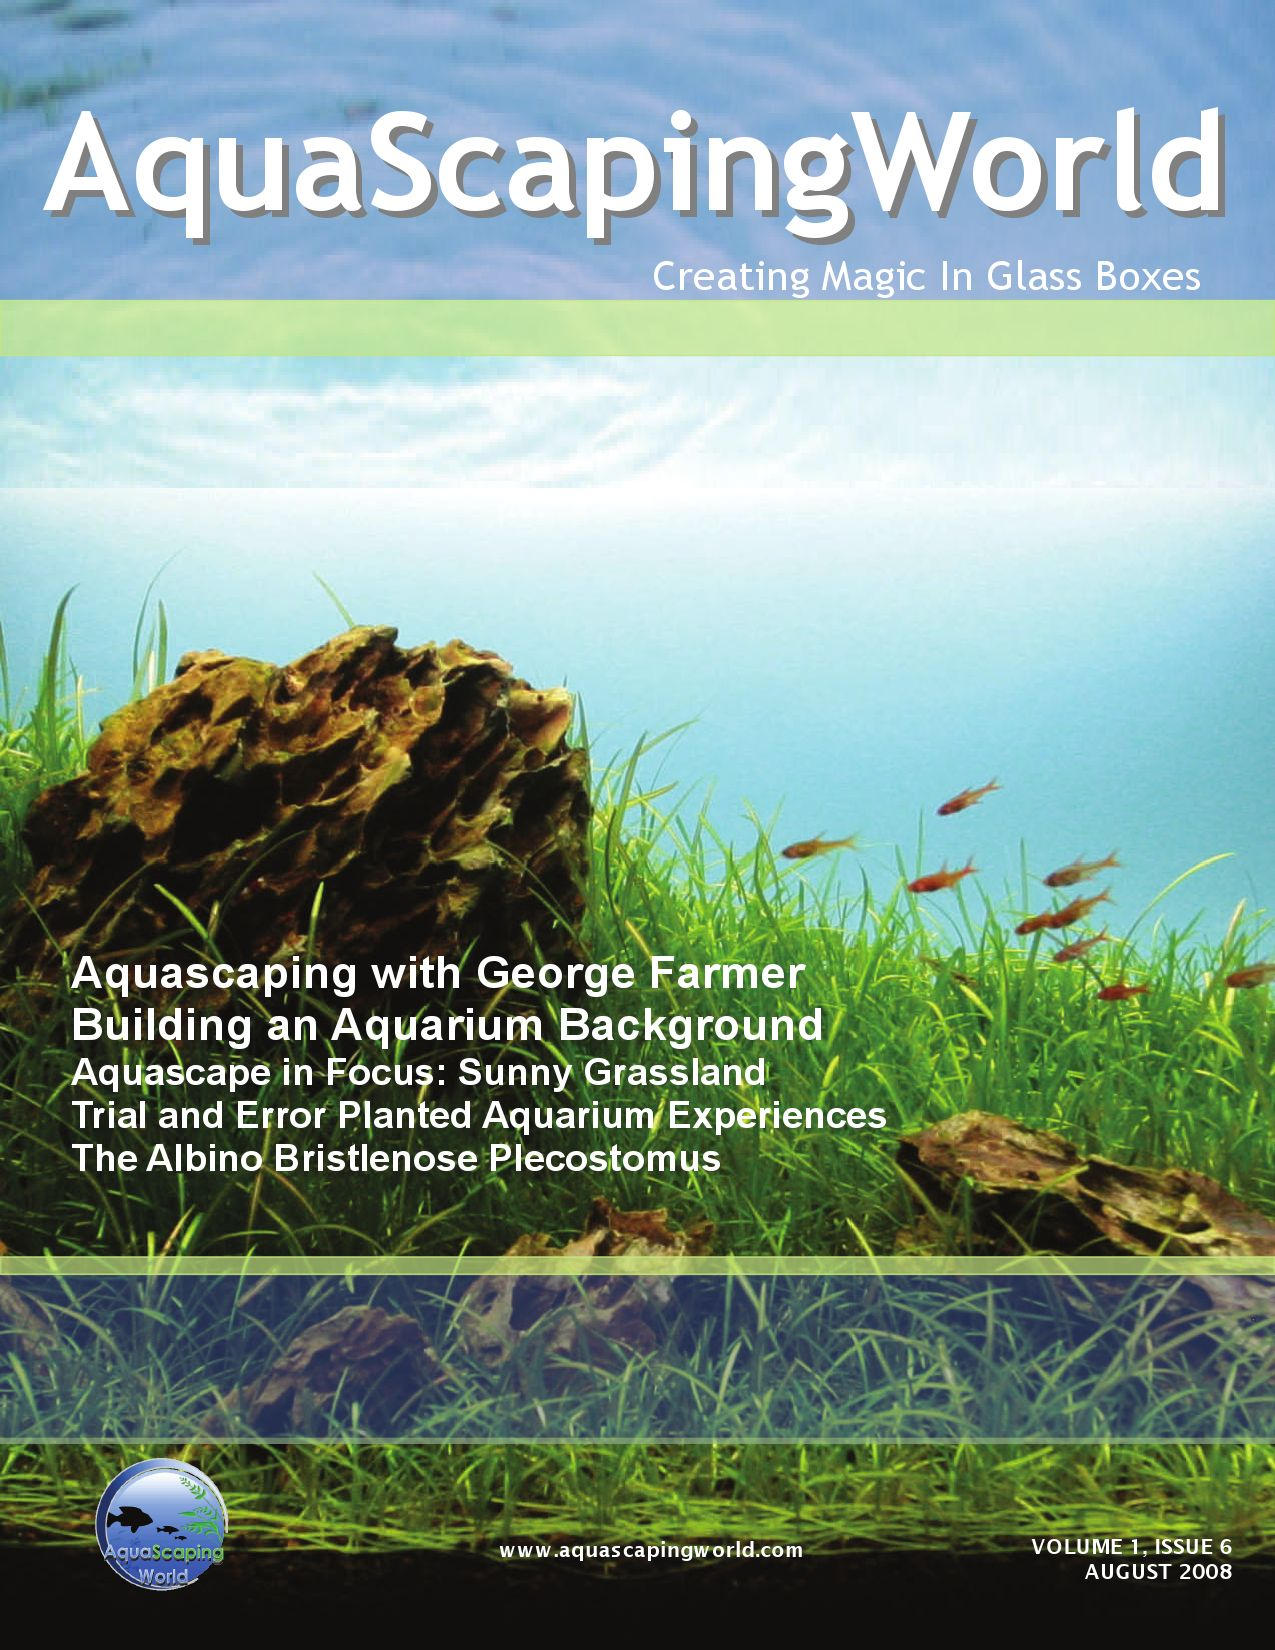 AquaScaping World Magazine August 2008 by John_N - Issuu